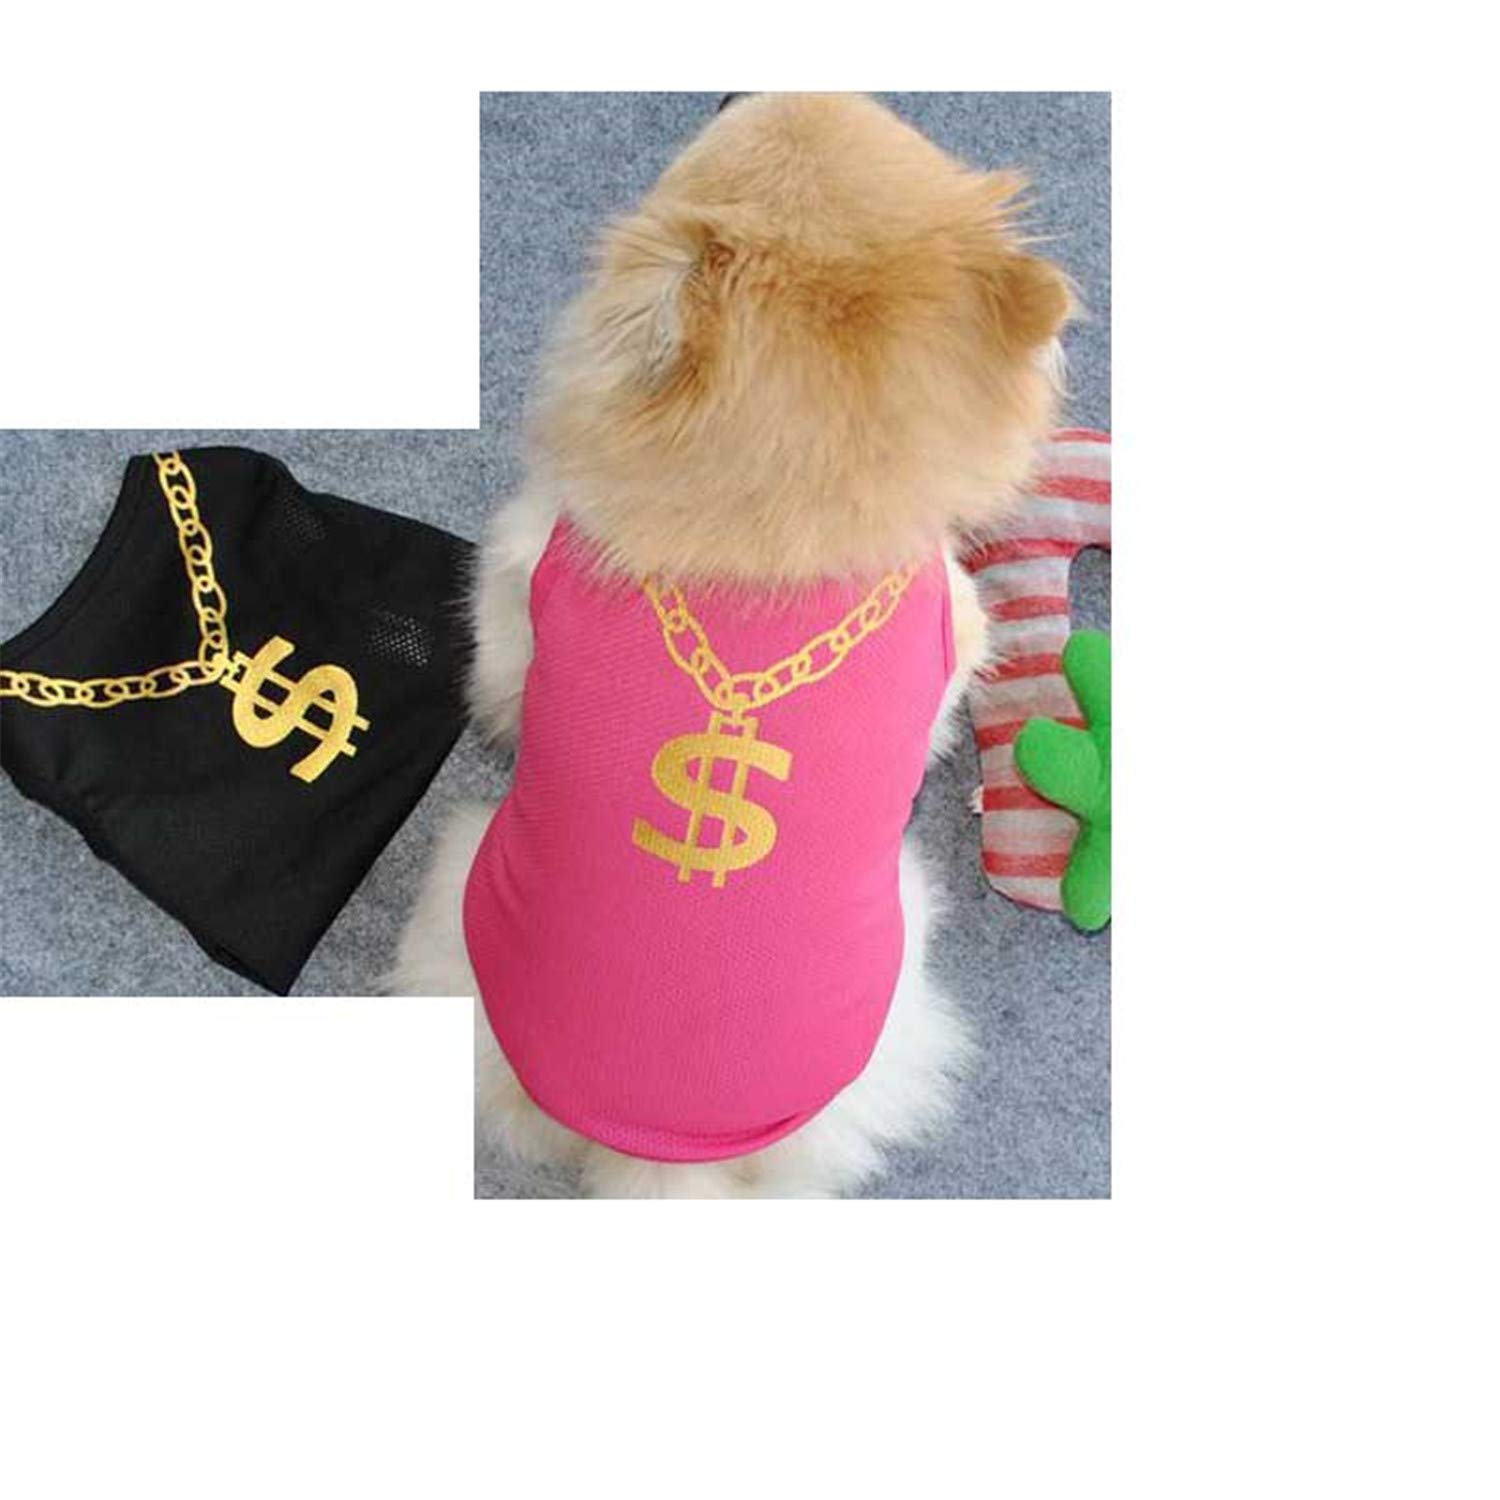 Amazon.com : Clothes for Dog Summer Puppy Small Dog Pet Clothes Vest T Shirt Apparel Ropa para Perros Dog Clothing Pri : Pet Supplies